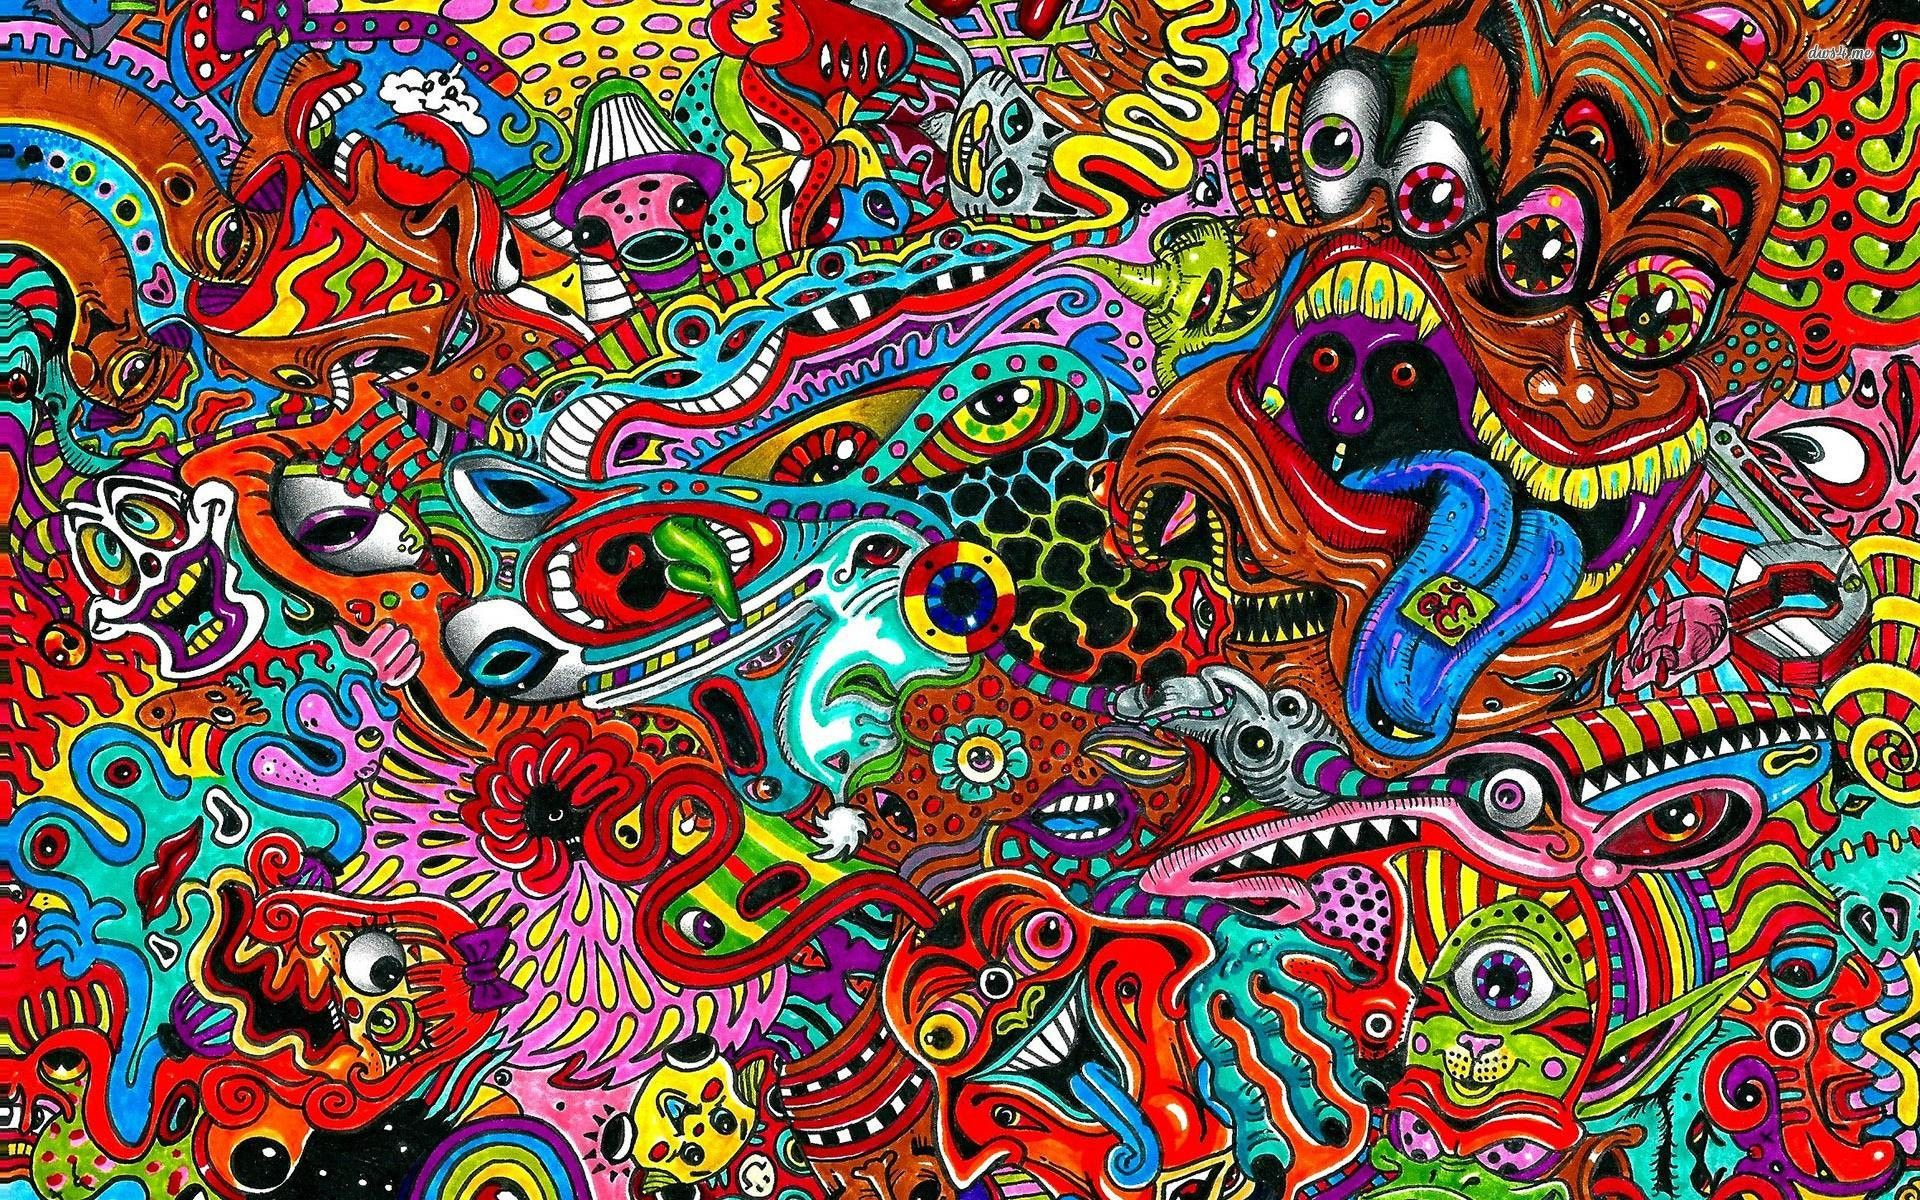 1920x1200 Trippy Hippie Wallpaper 53 - Get HD Wallpapers Free